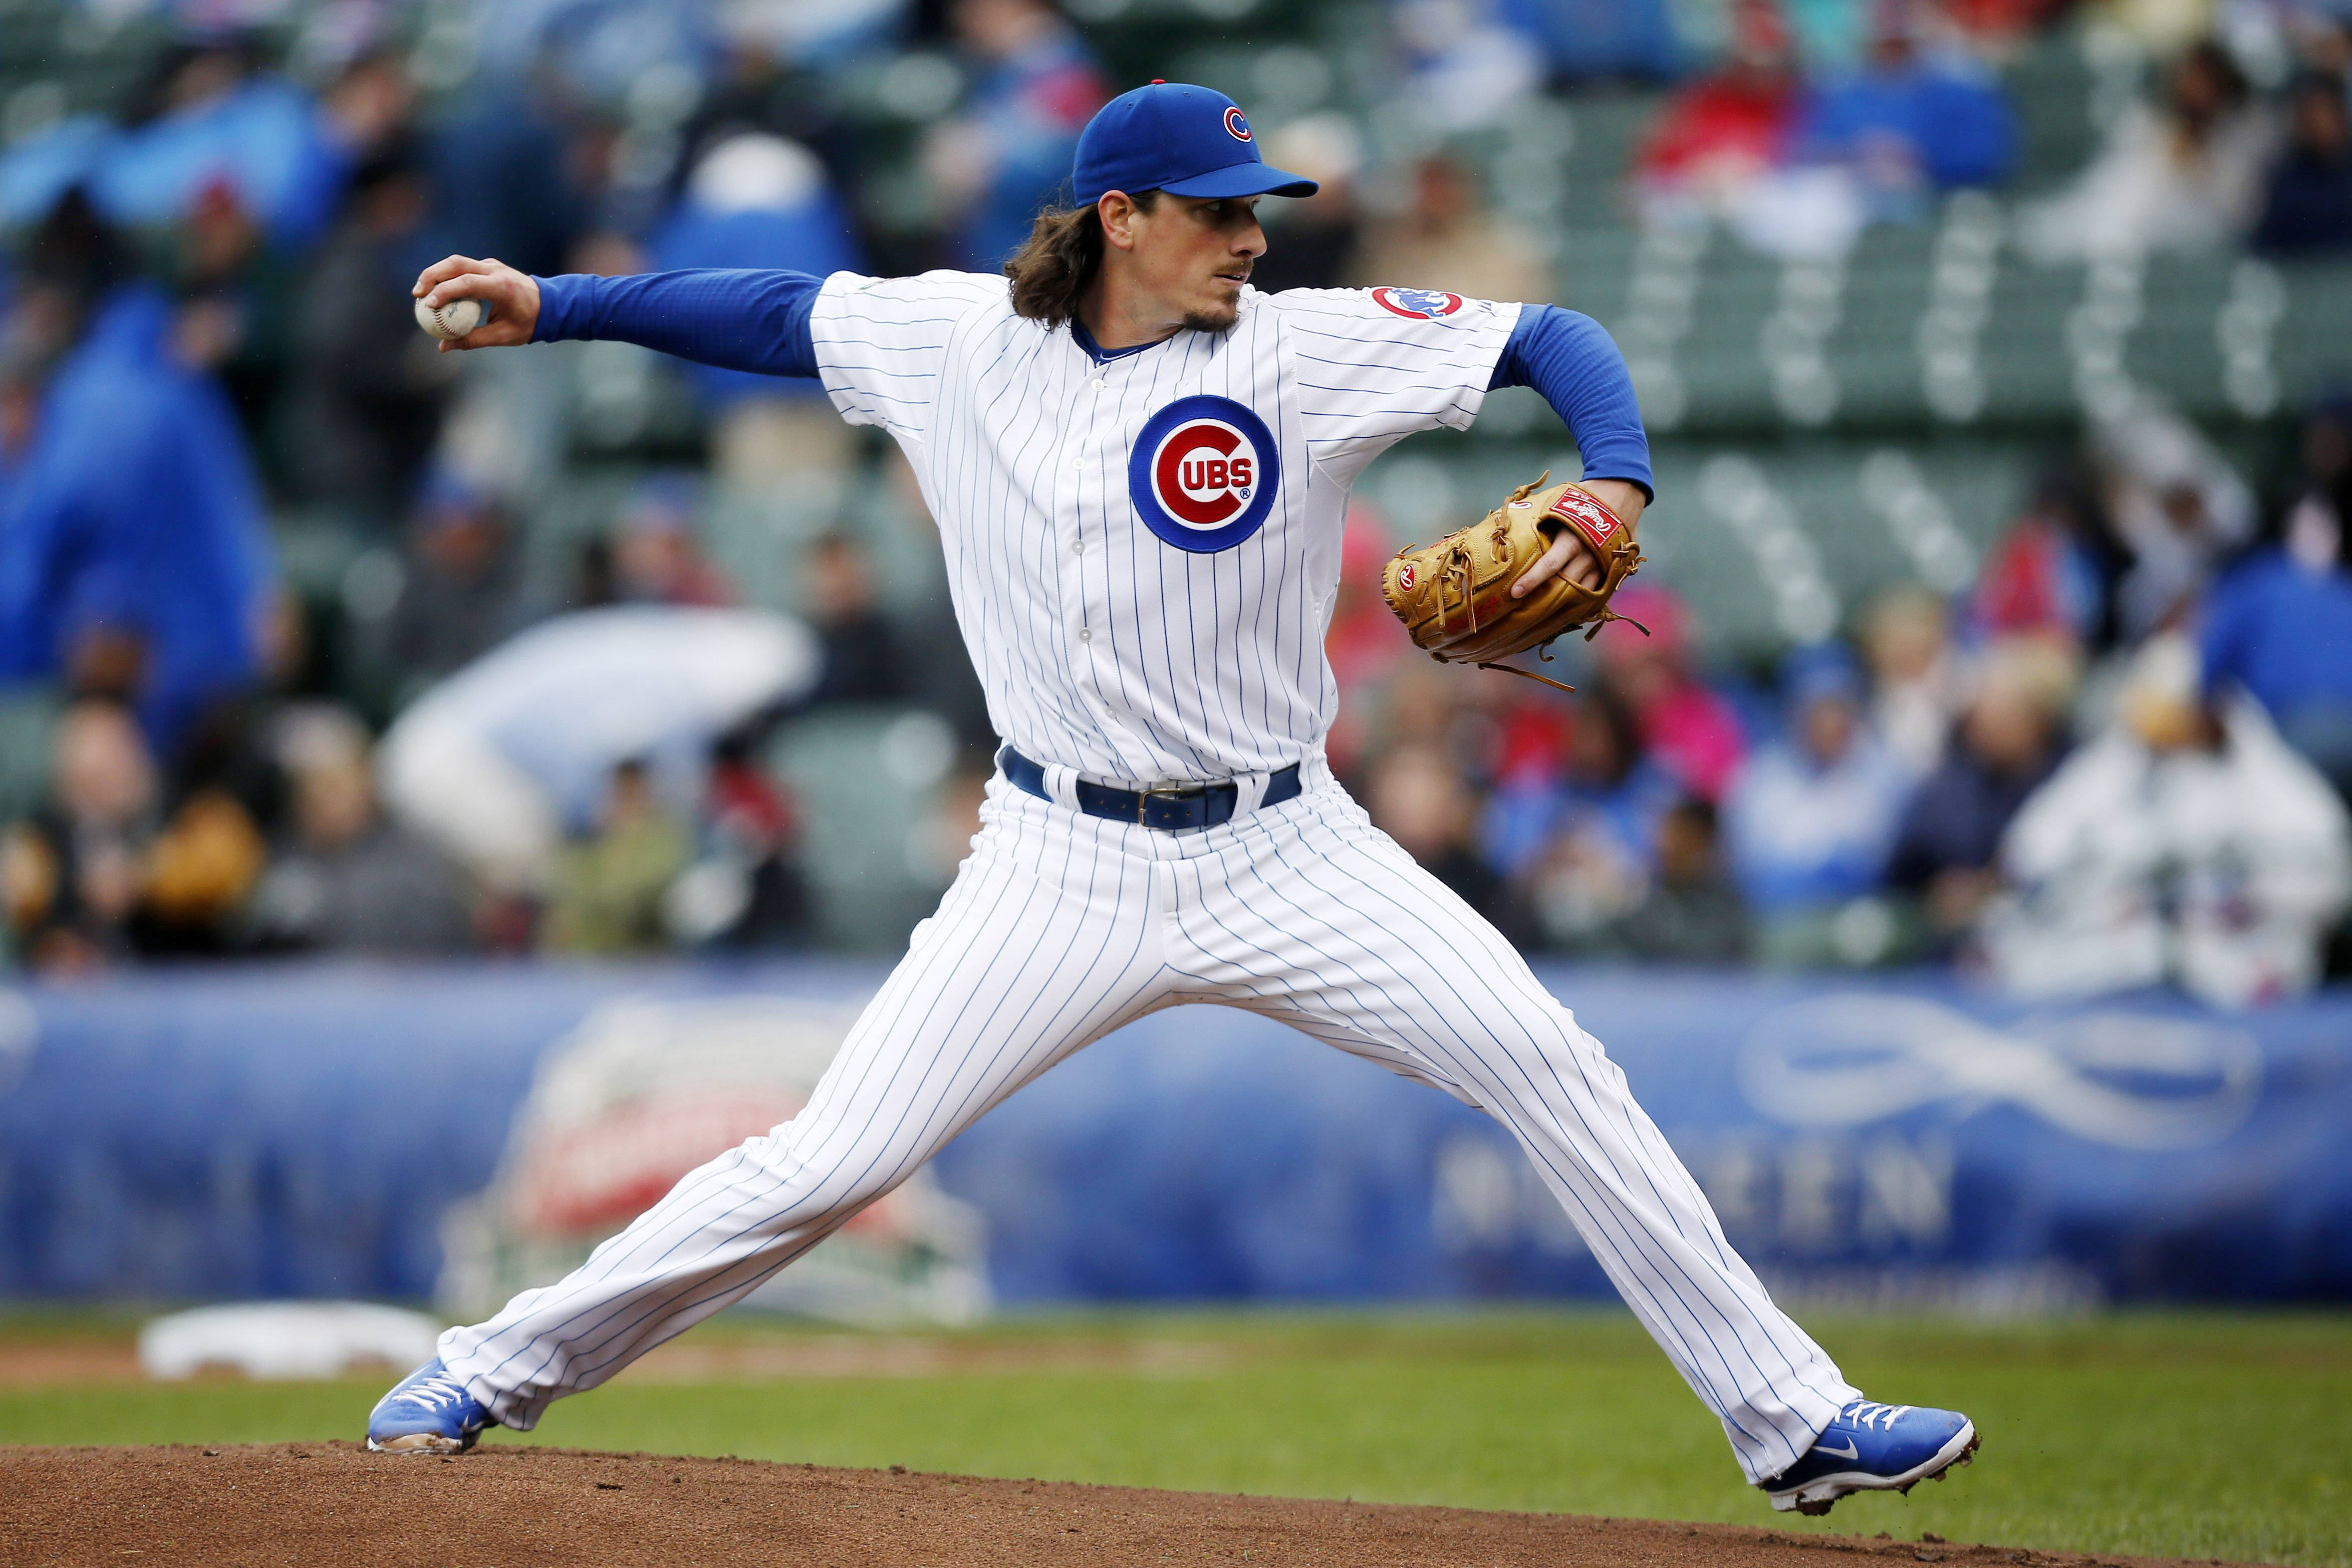 Same-old, same-old for Samardzija